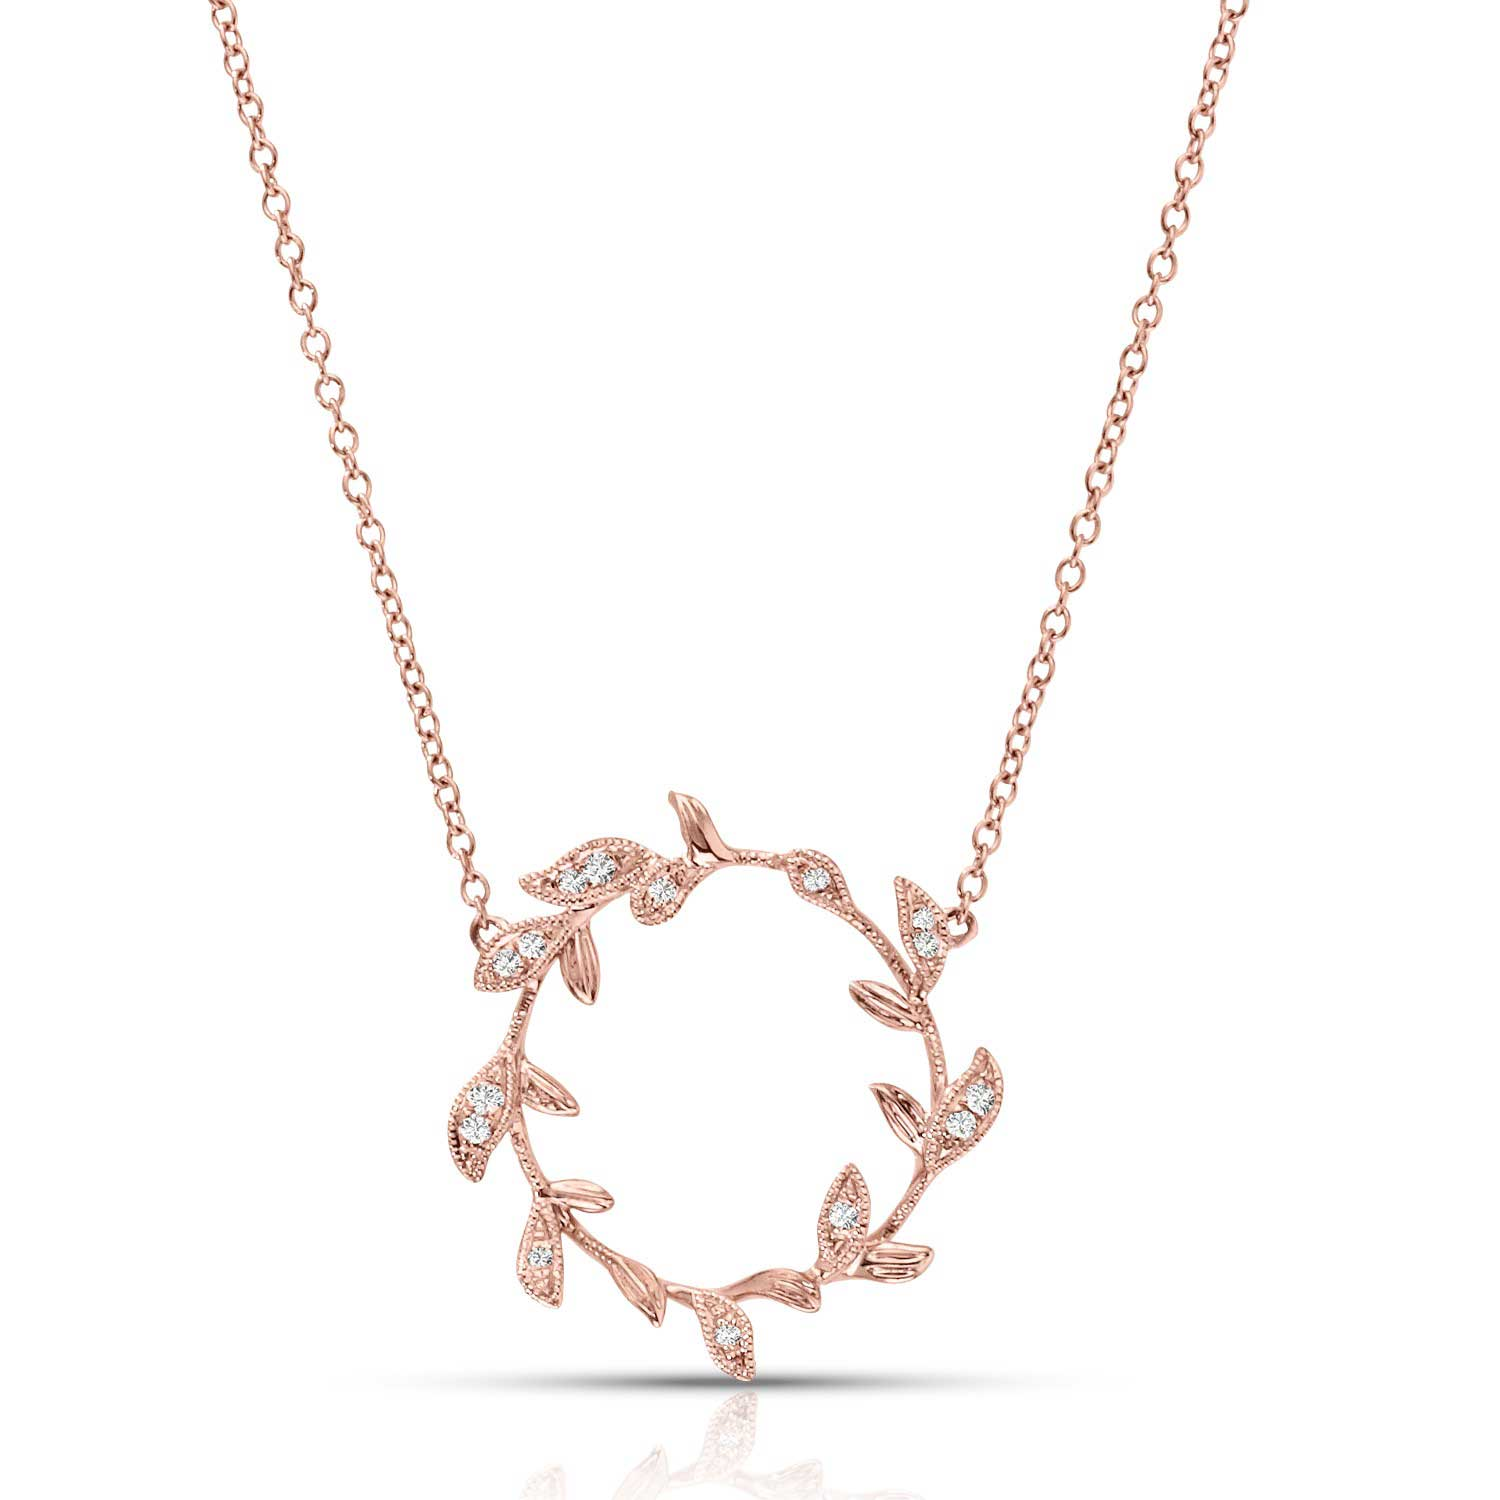 Diamond Wreath Necklace, 14K Rose Gold